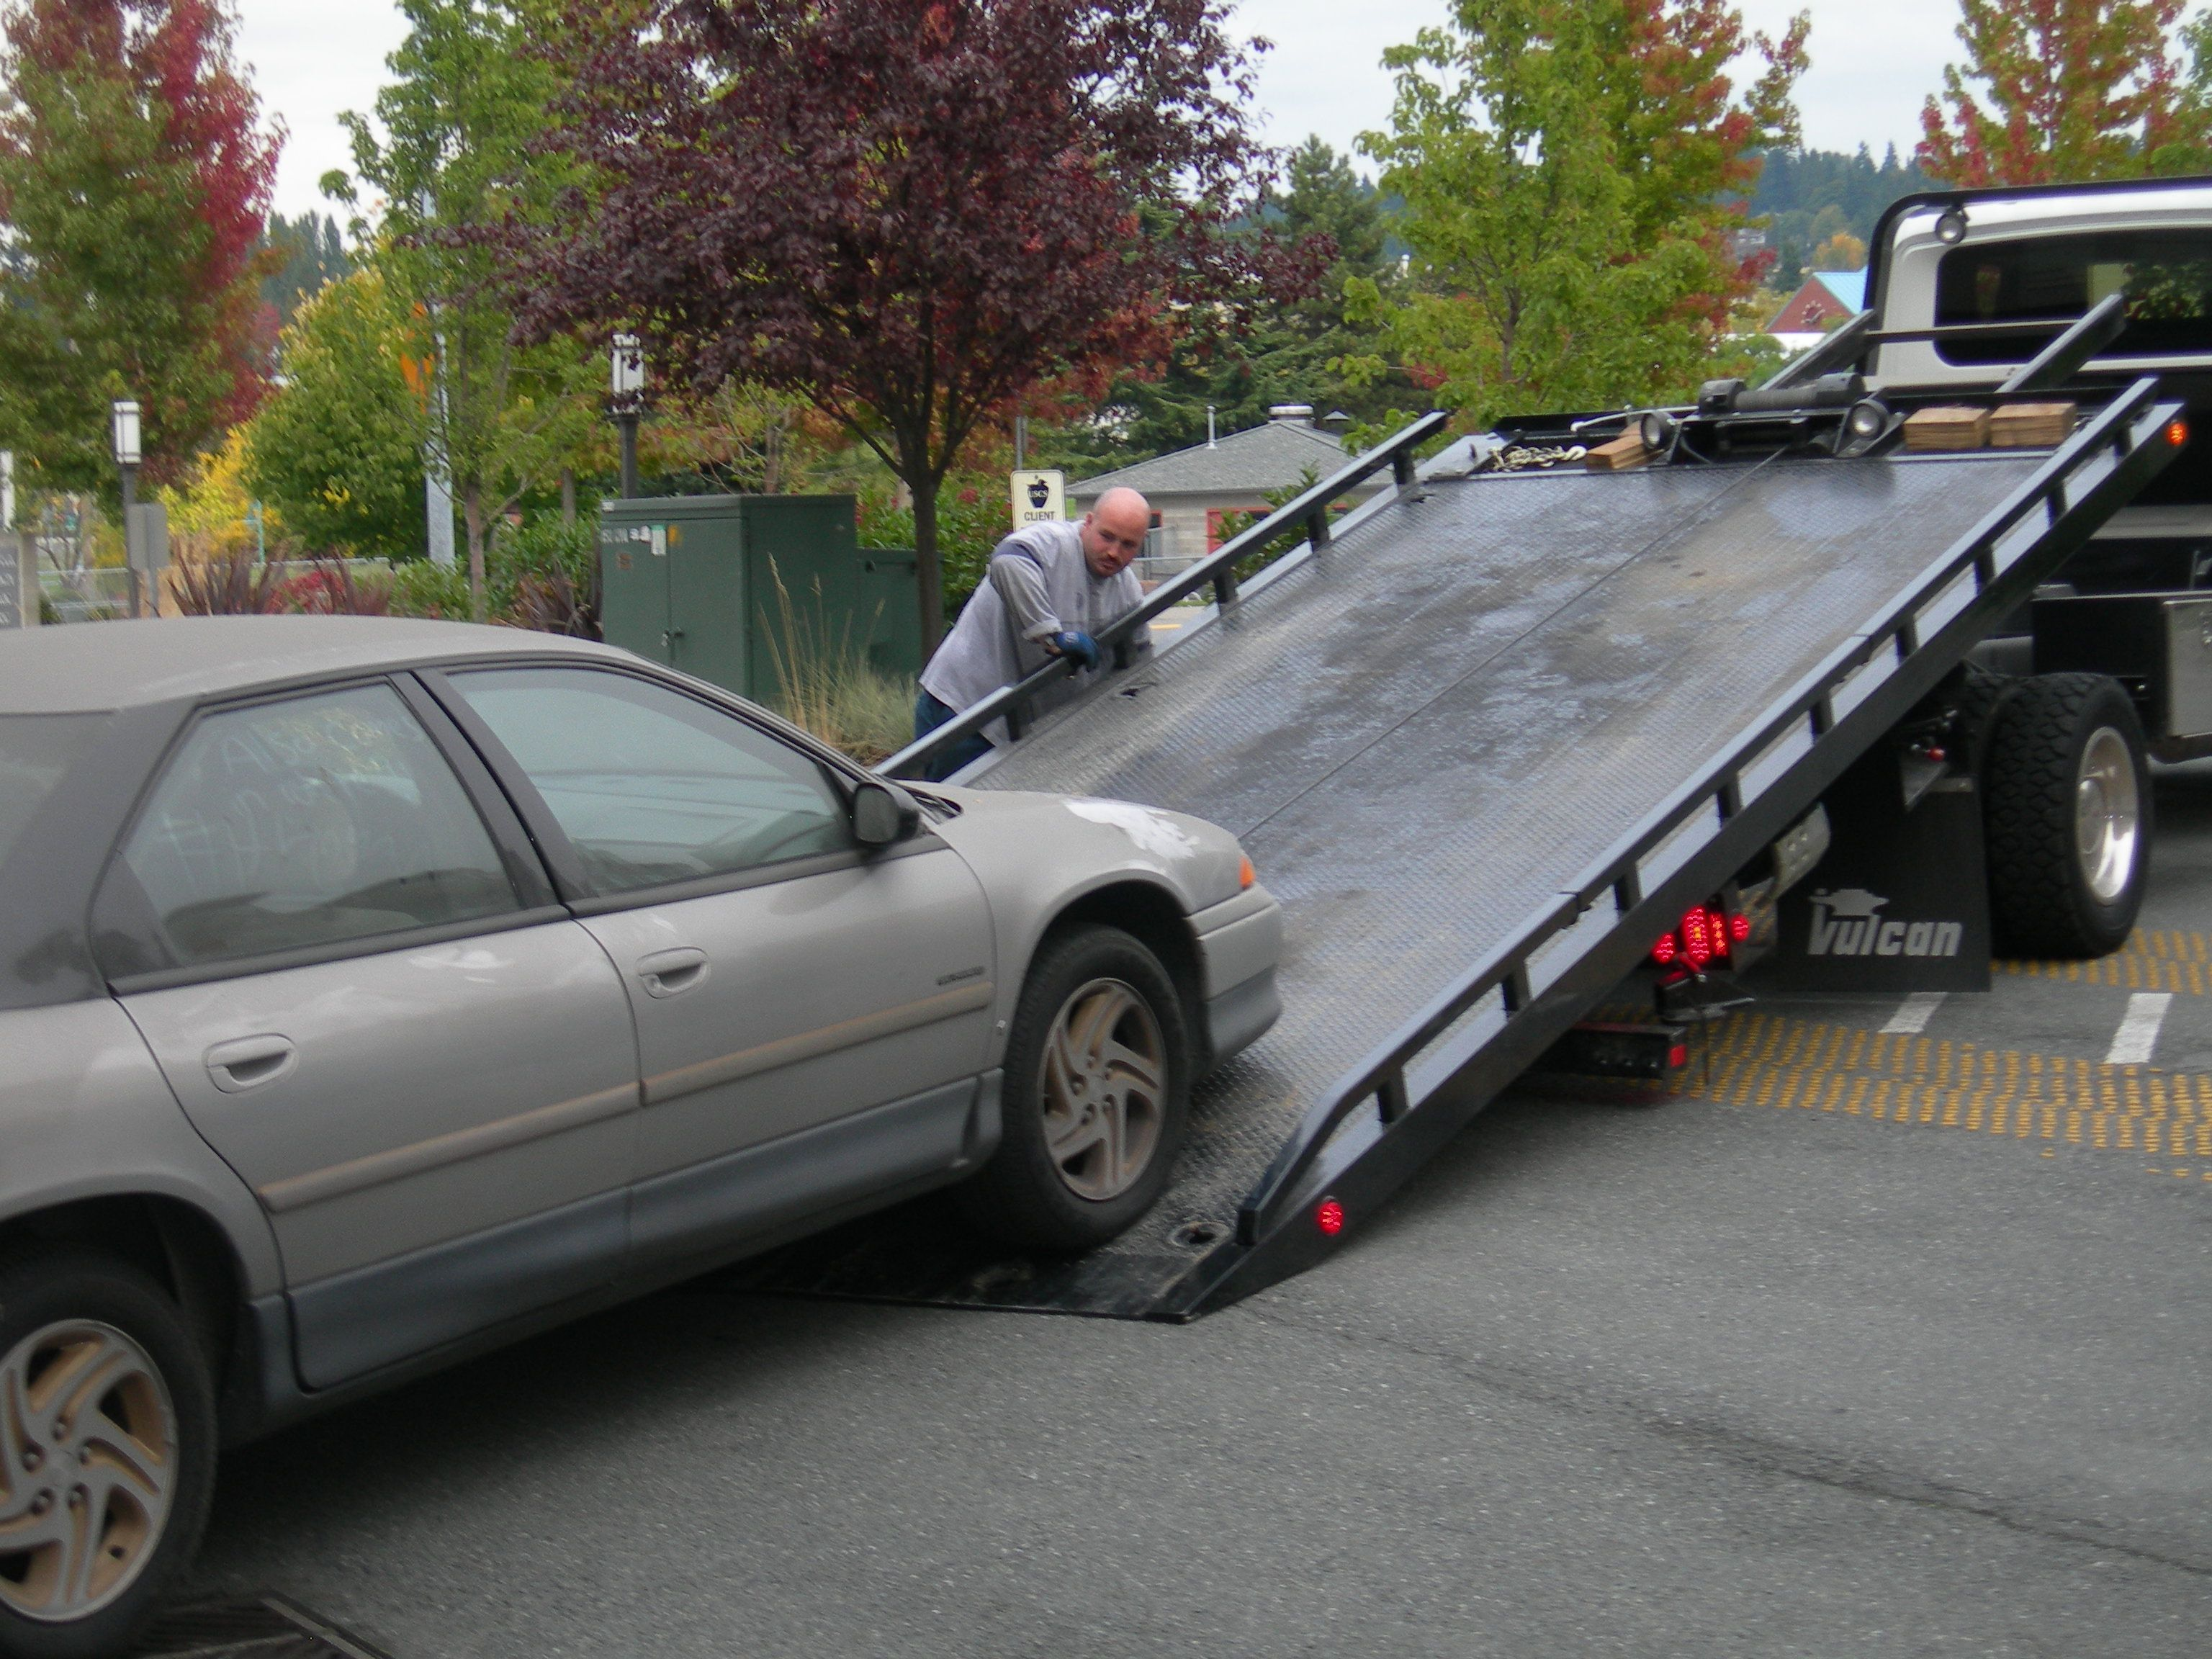 reliable towing in ca | All Star Emergency Roadside Asst ...